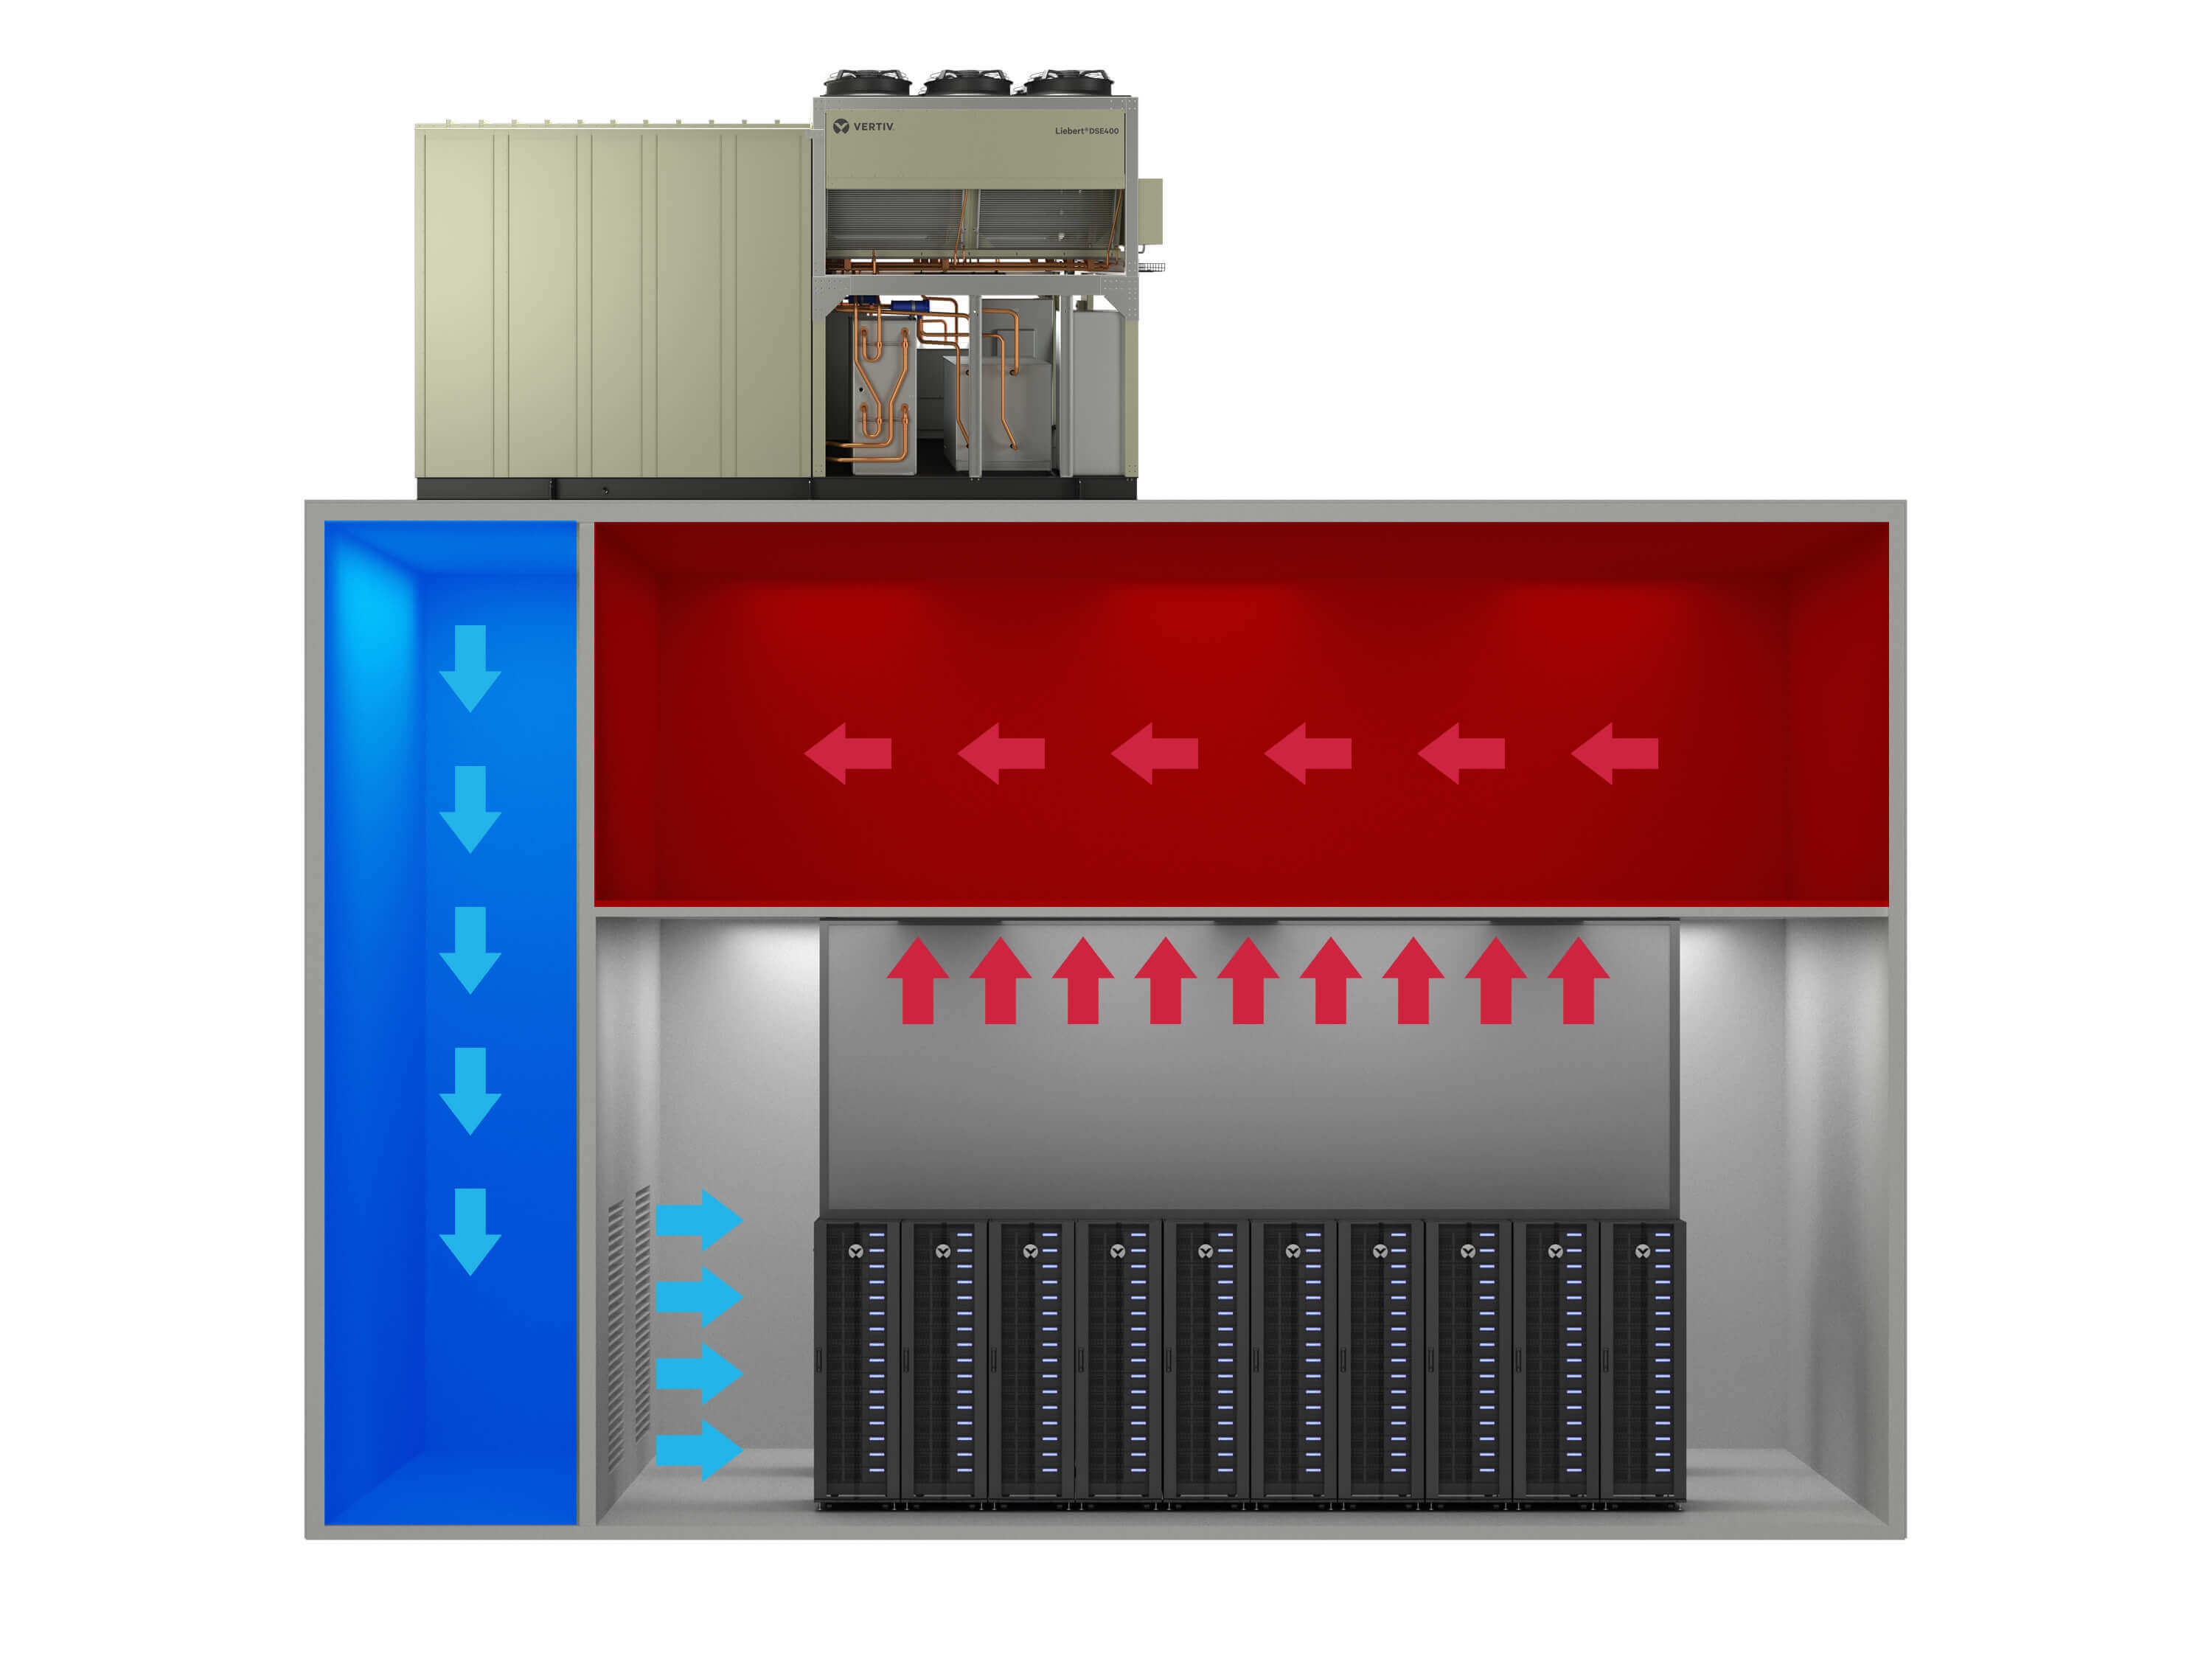 Data Center Systems, Inc Liebert DSE Packaged Free-Cooling Solution, 400-500kW Draw-Thru Rooftop Configuration